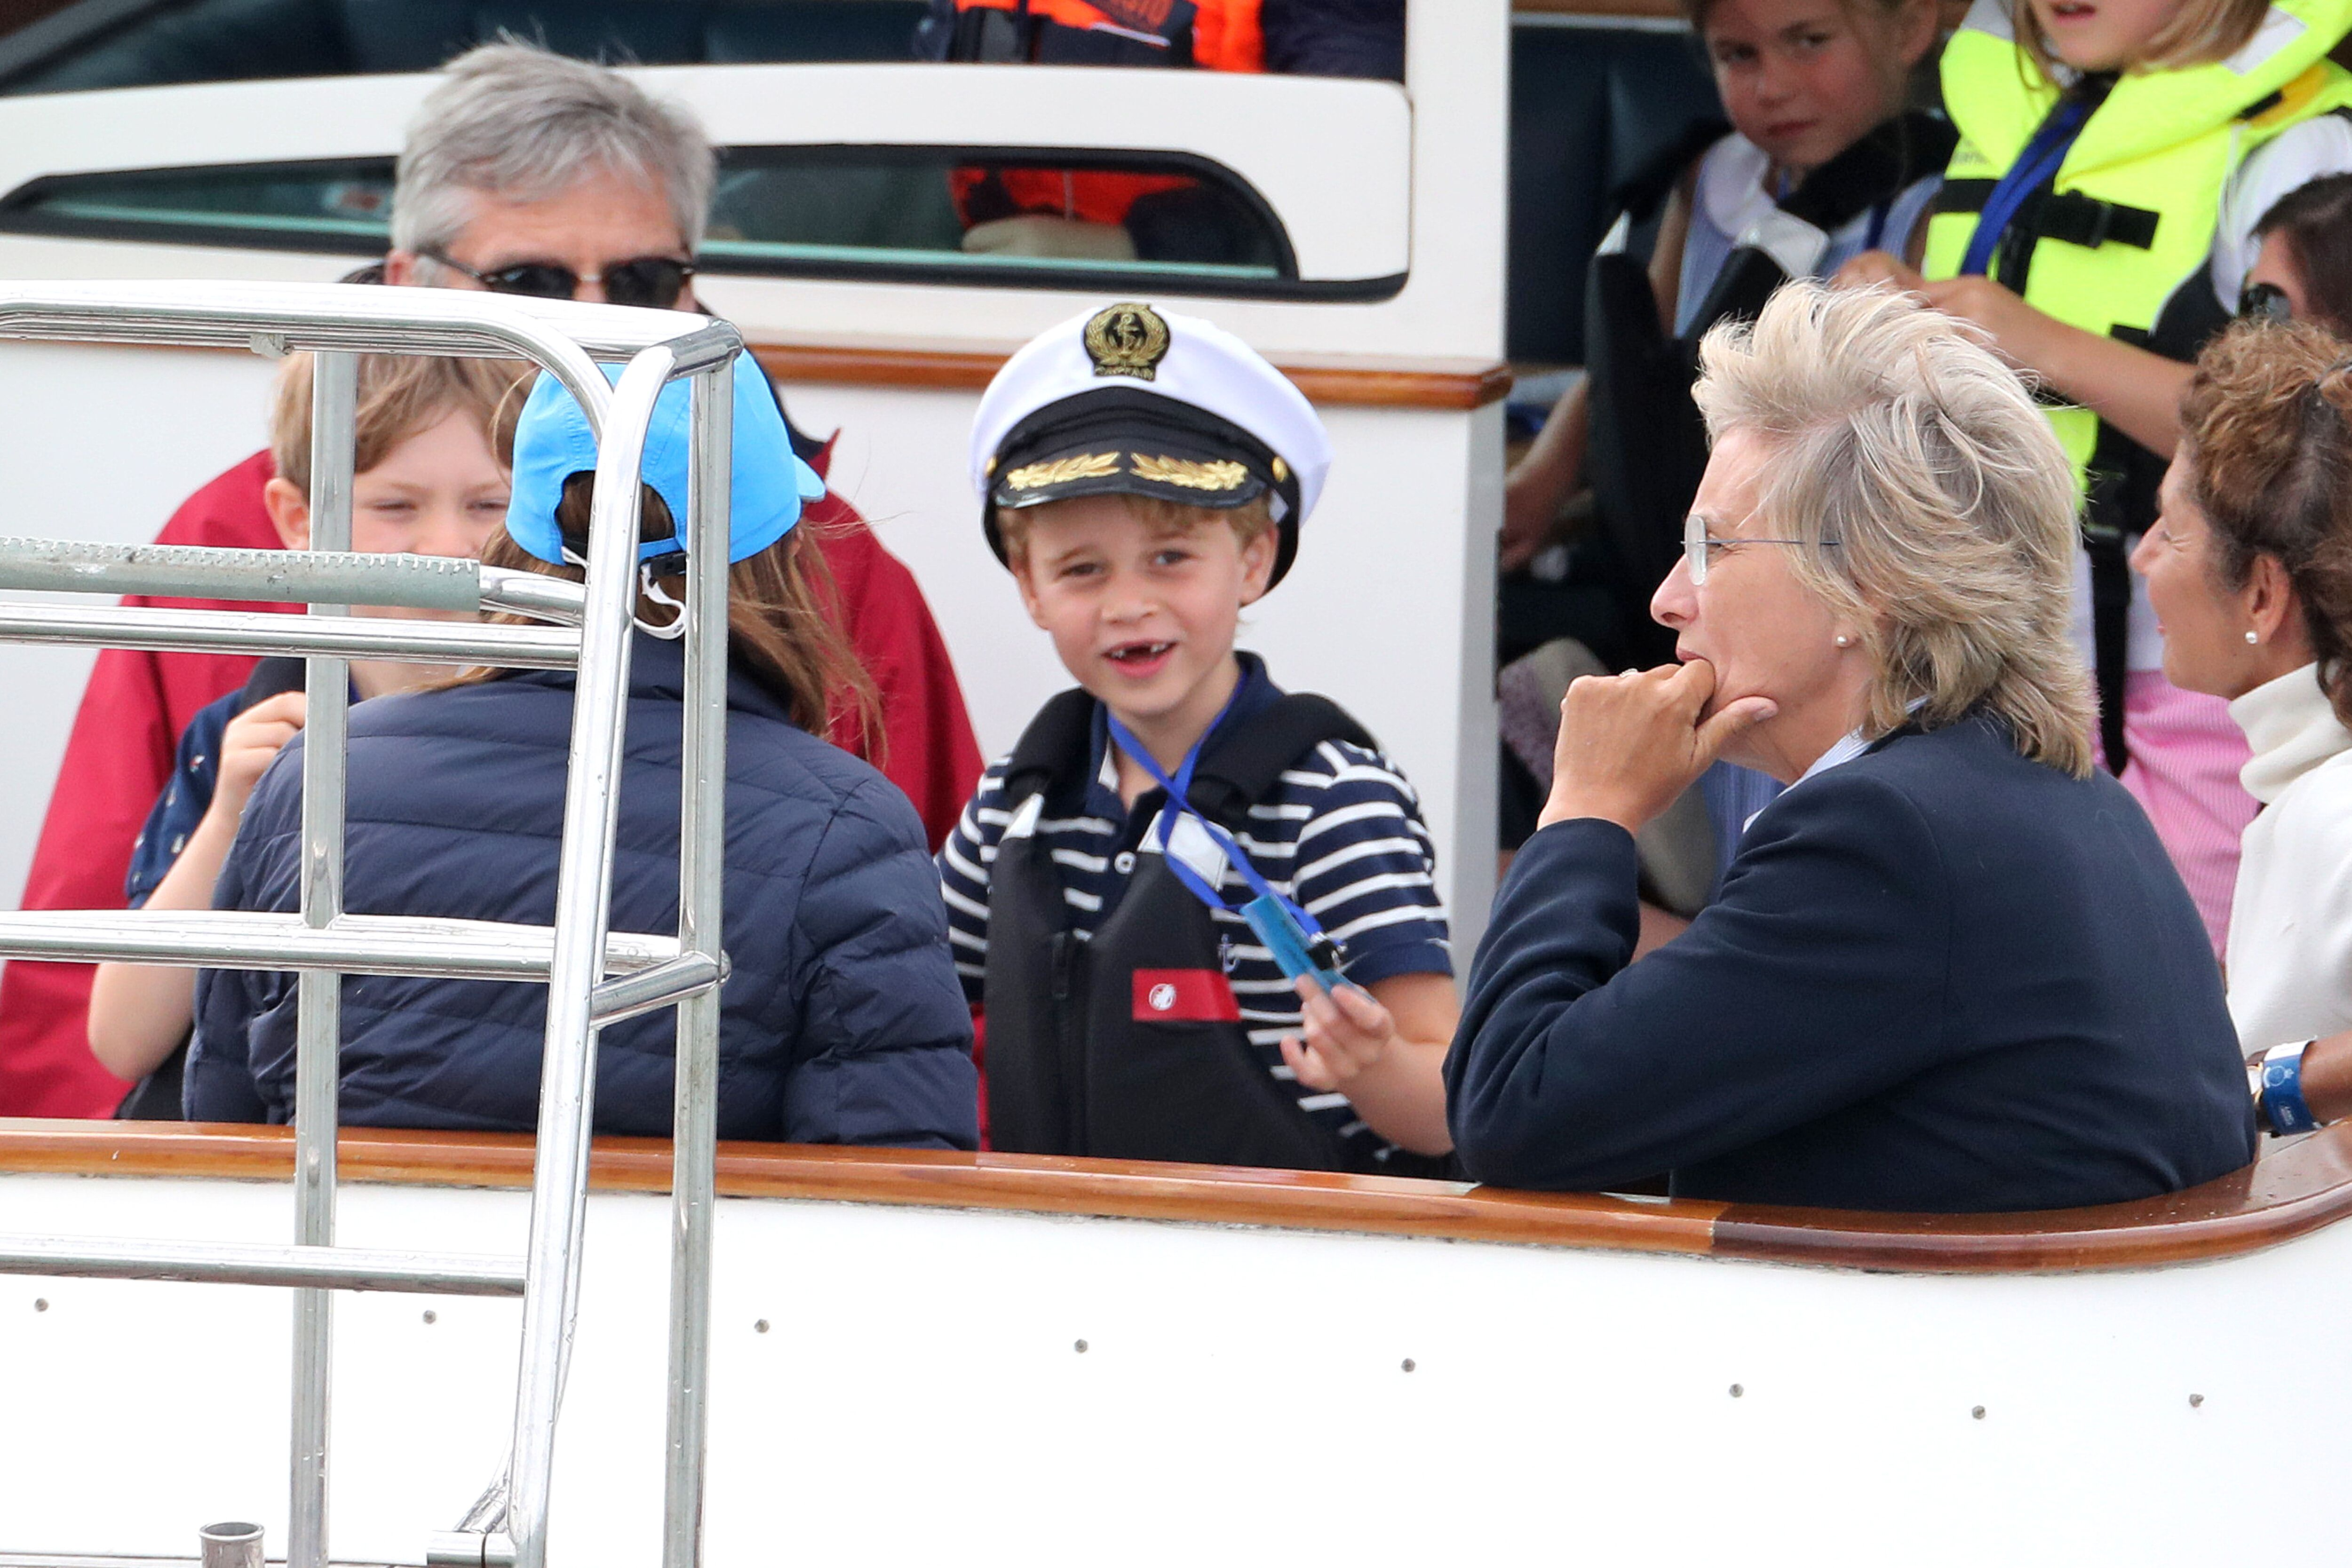 Prince George at the King's Cup charity race. | Source: Getty Images